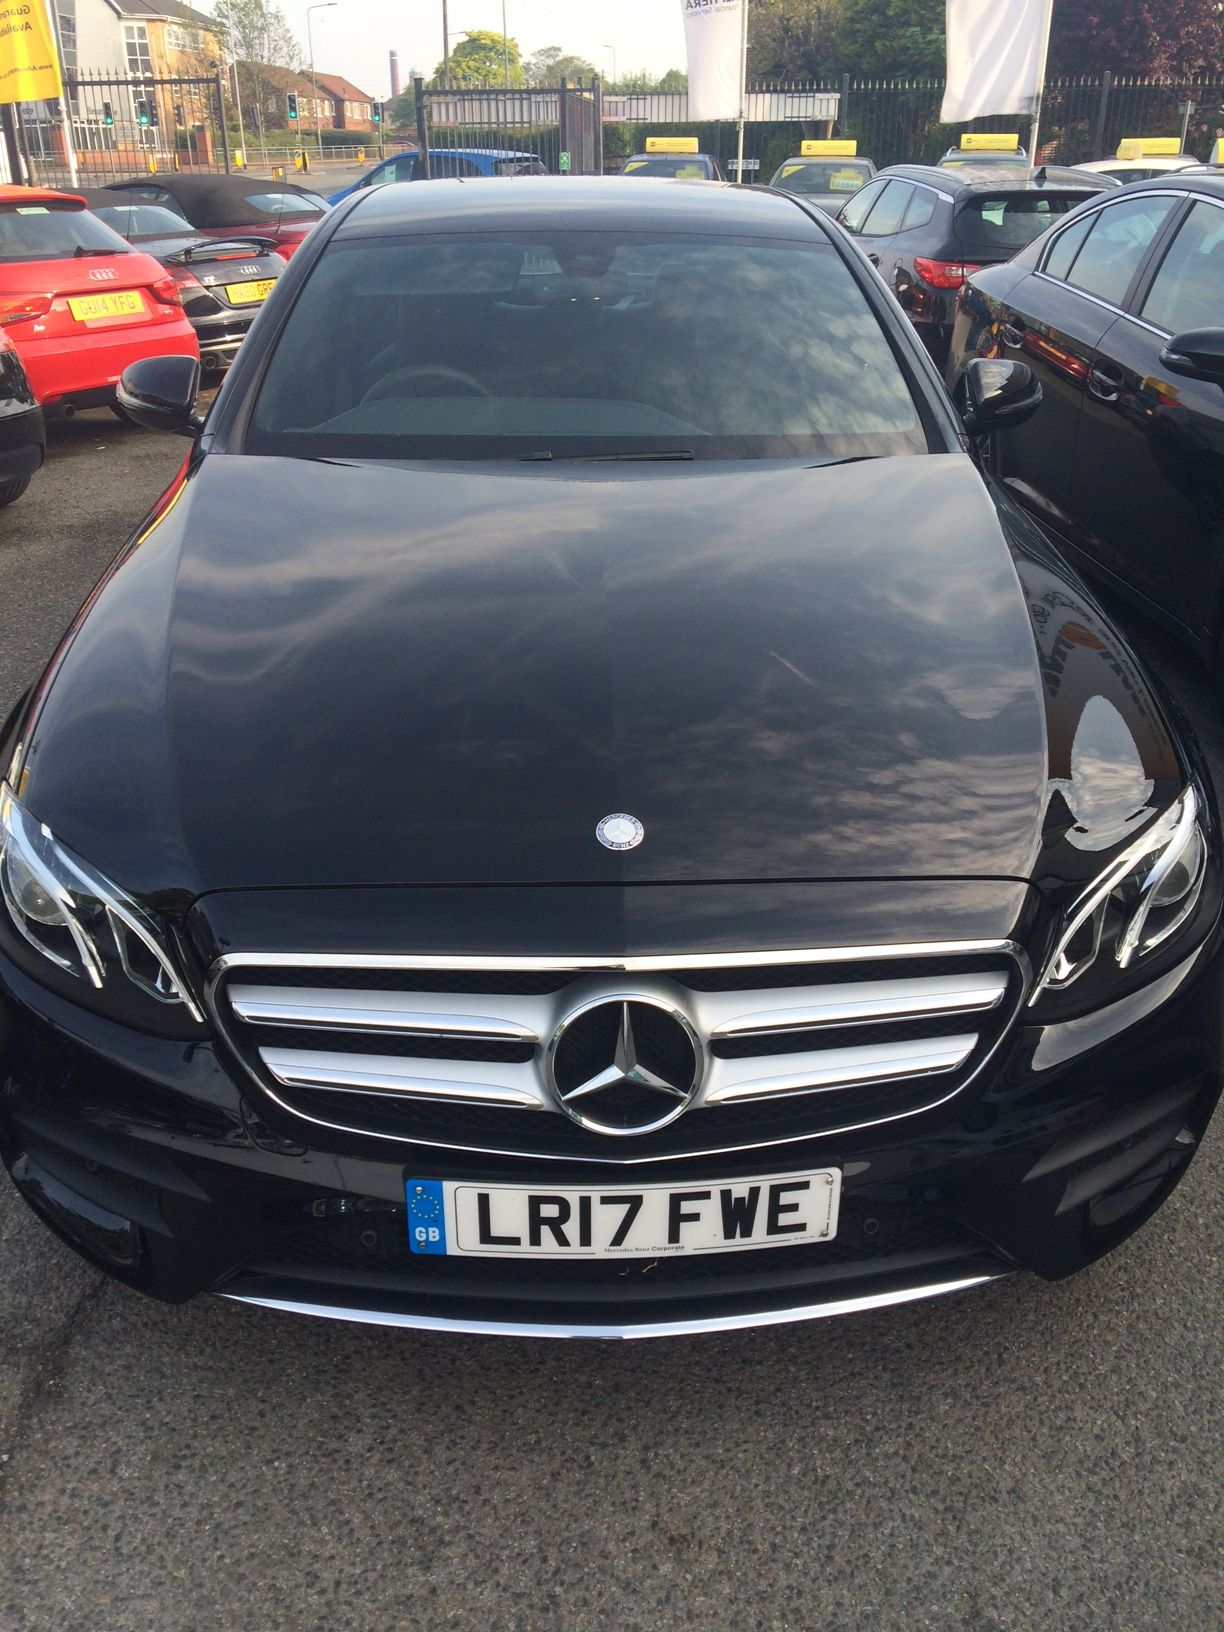 The Mercedes Benz E Class carleasing deal